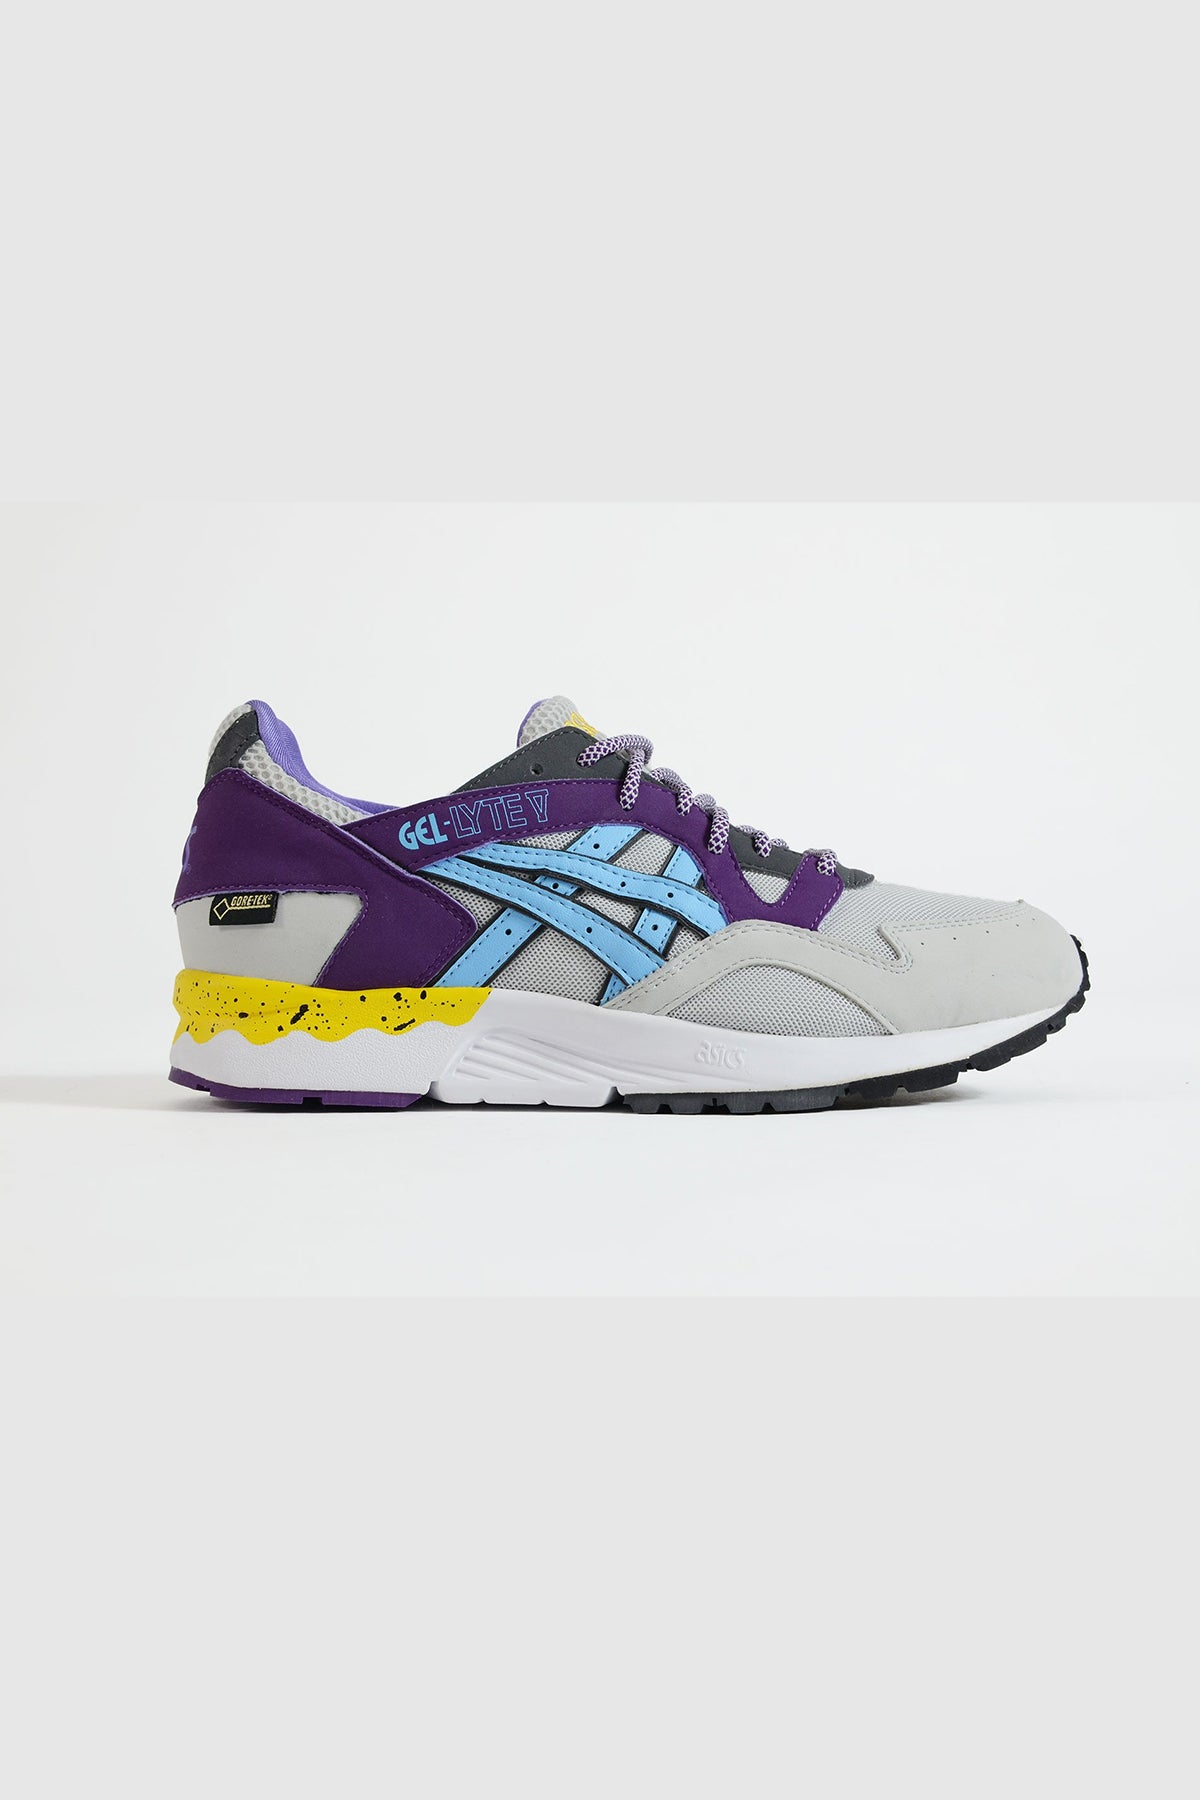 on sale c652b e0342 Asics - Gel - Lyte V